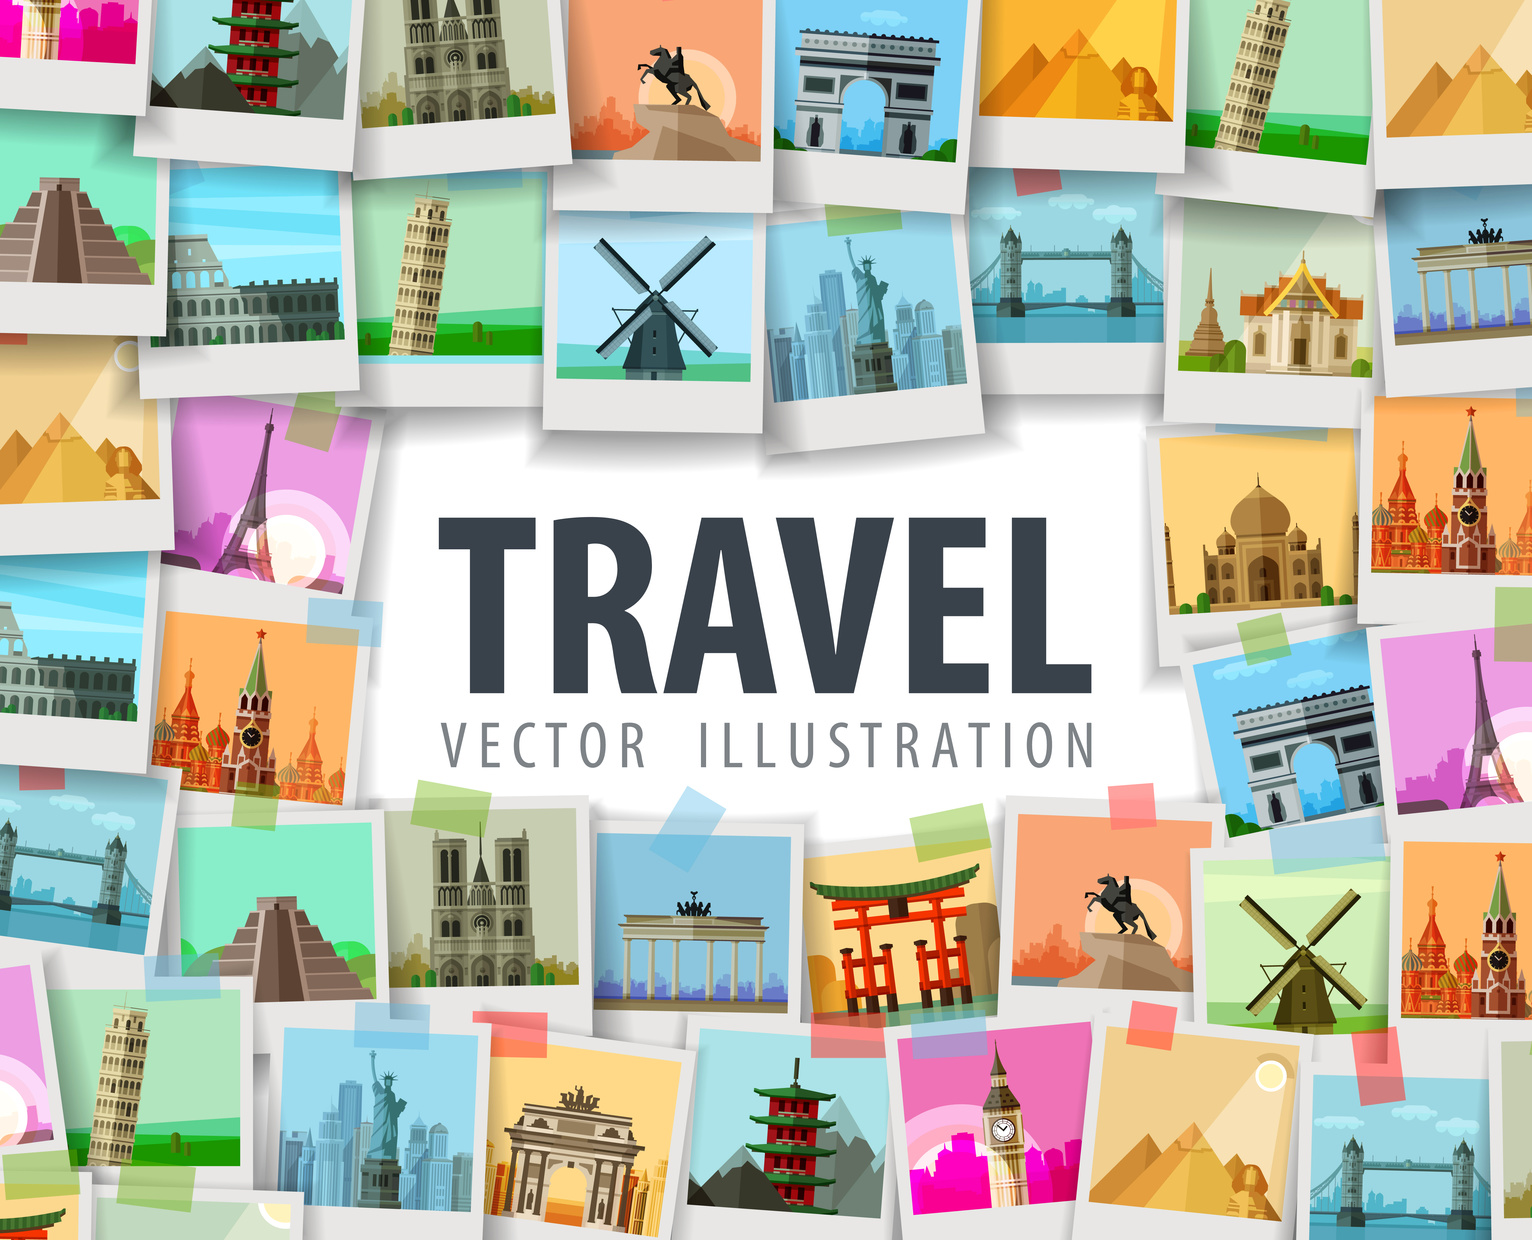 Turn Dream into Reality with Viator Travel Advisor